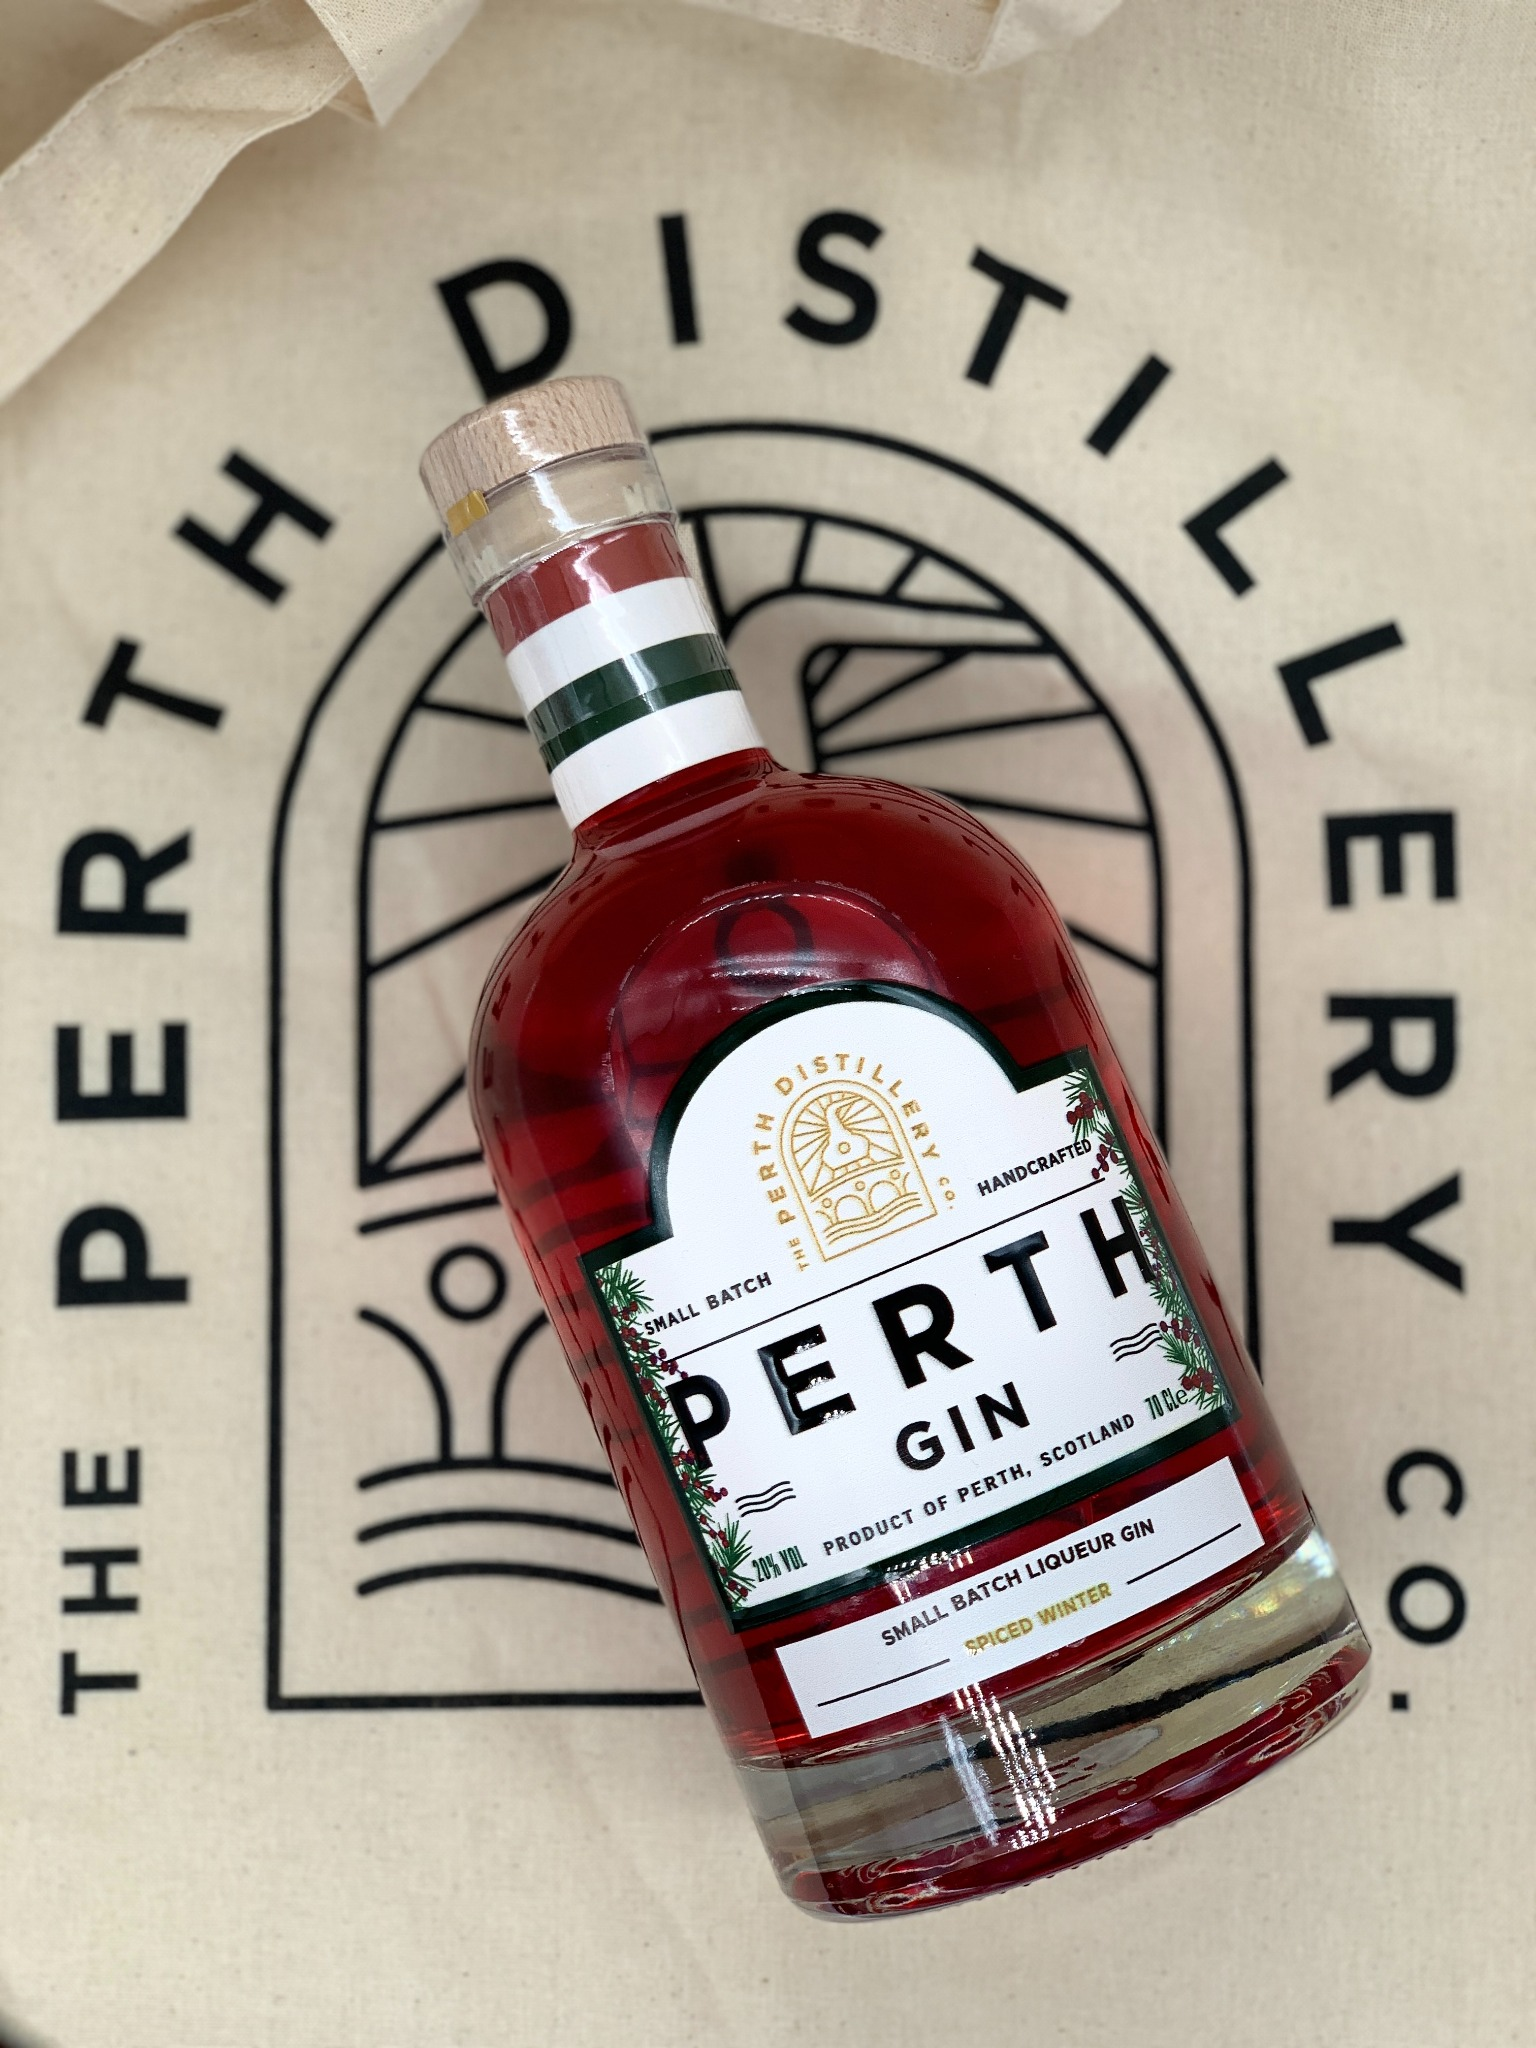 Perth Gin Winter Spiced Gin Liqueur 70cl - MOTHERS DAY Delivery SATURDAY 13th March 2021